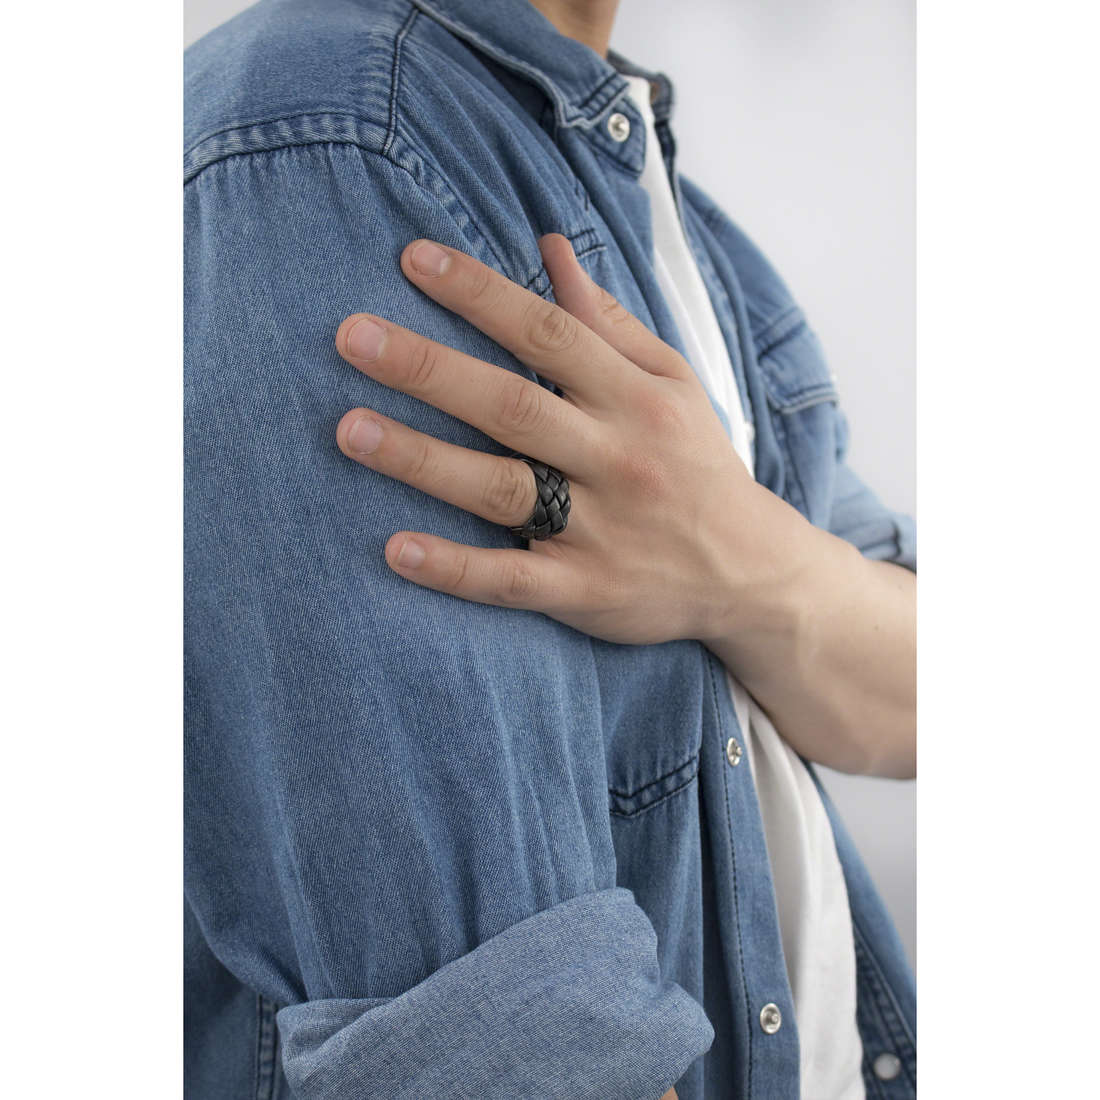 Brosway bagues homme BSO31F indosso